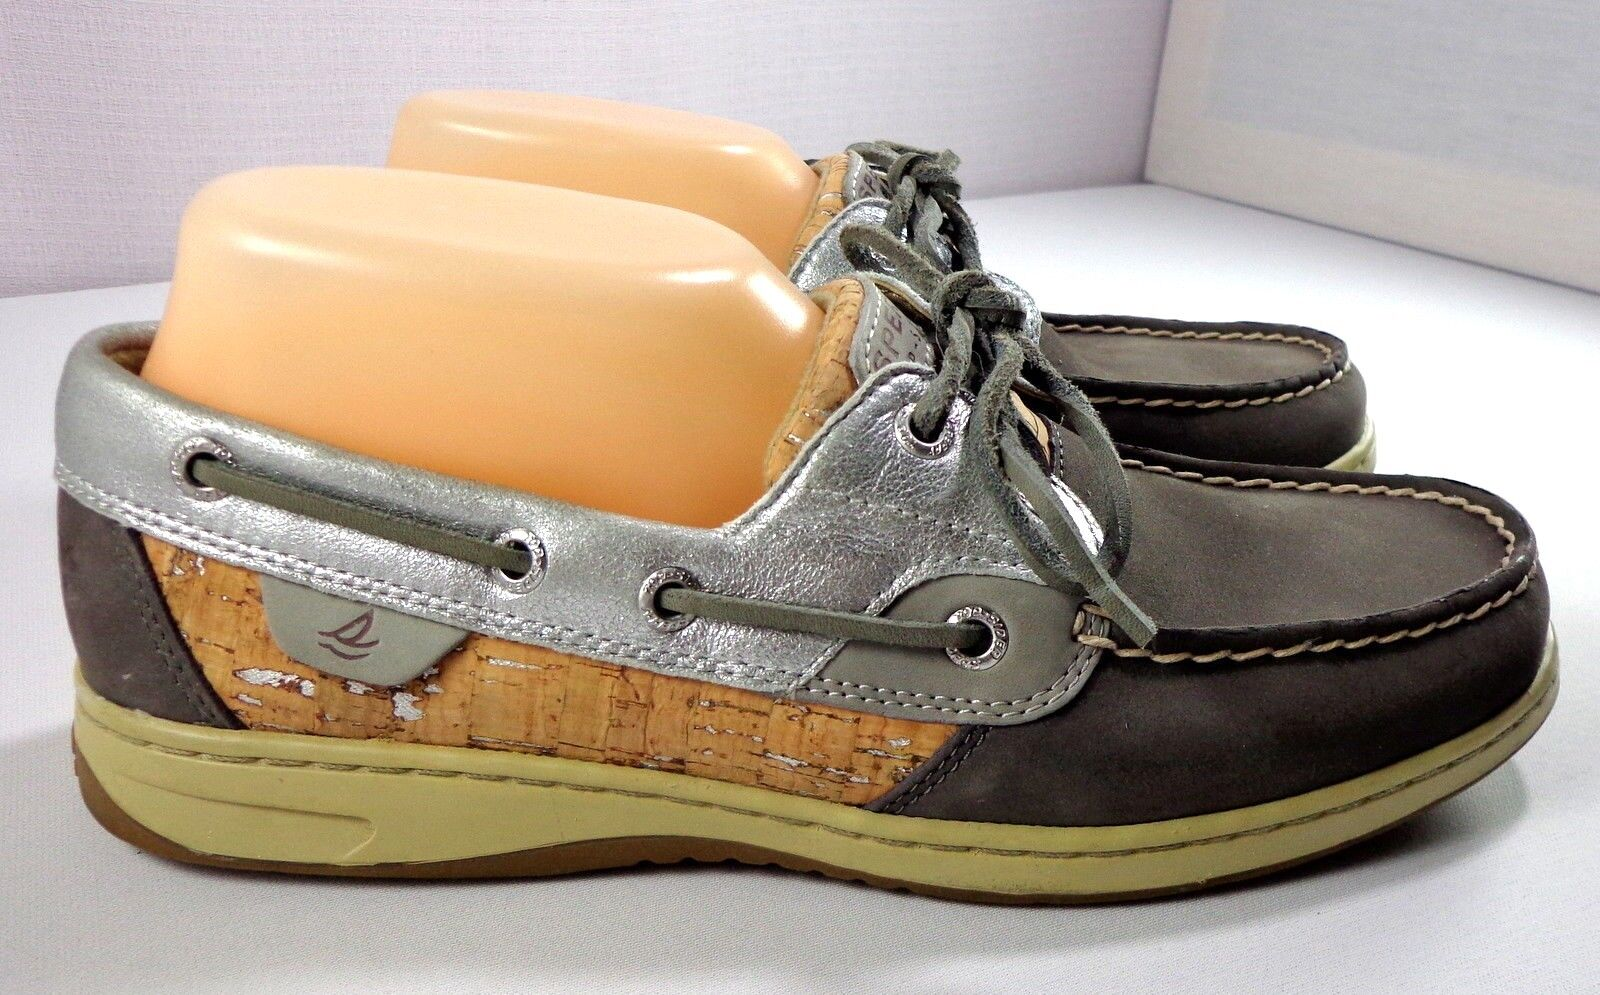 Sperry Top-Sider Boat shoes Womens blueefish Cork 2-Eye Size 9 M